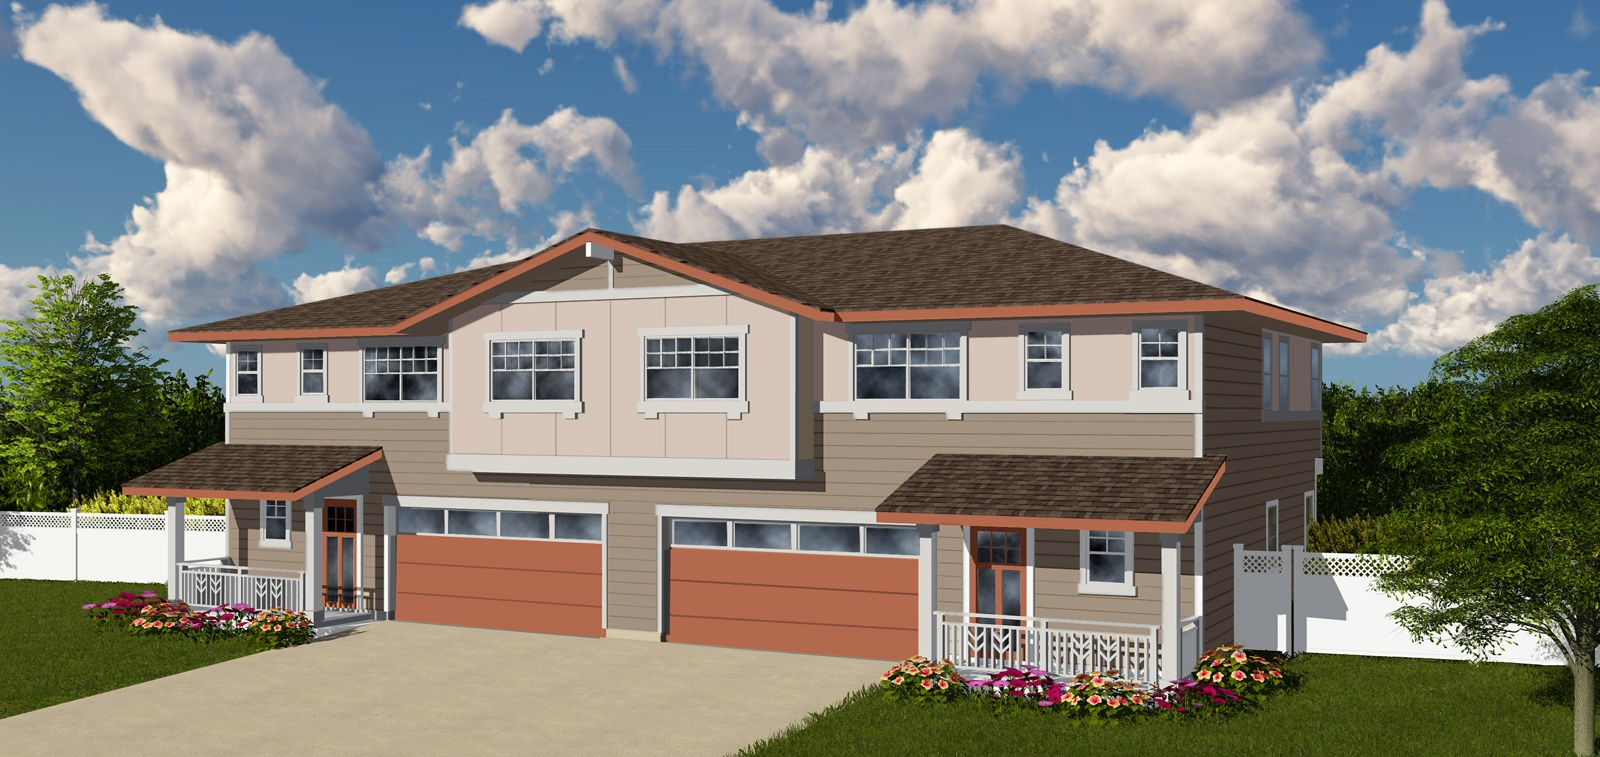 The Community Will Include Attached And Detached Single Family Homes Under Condominium Ownership